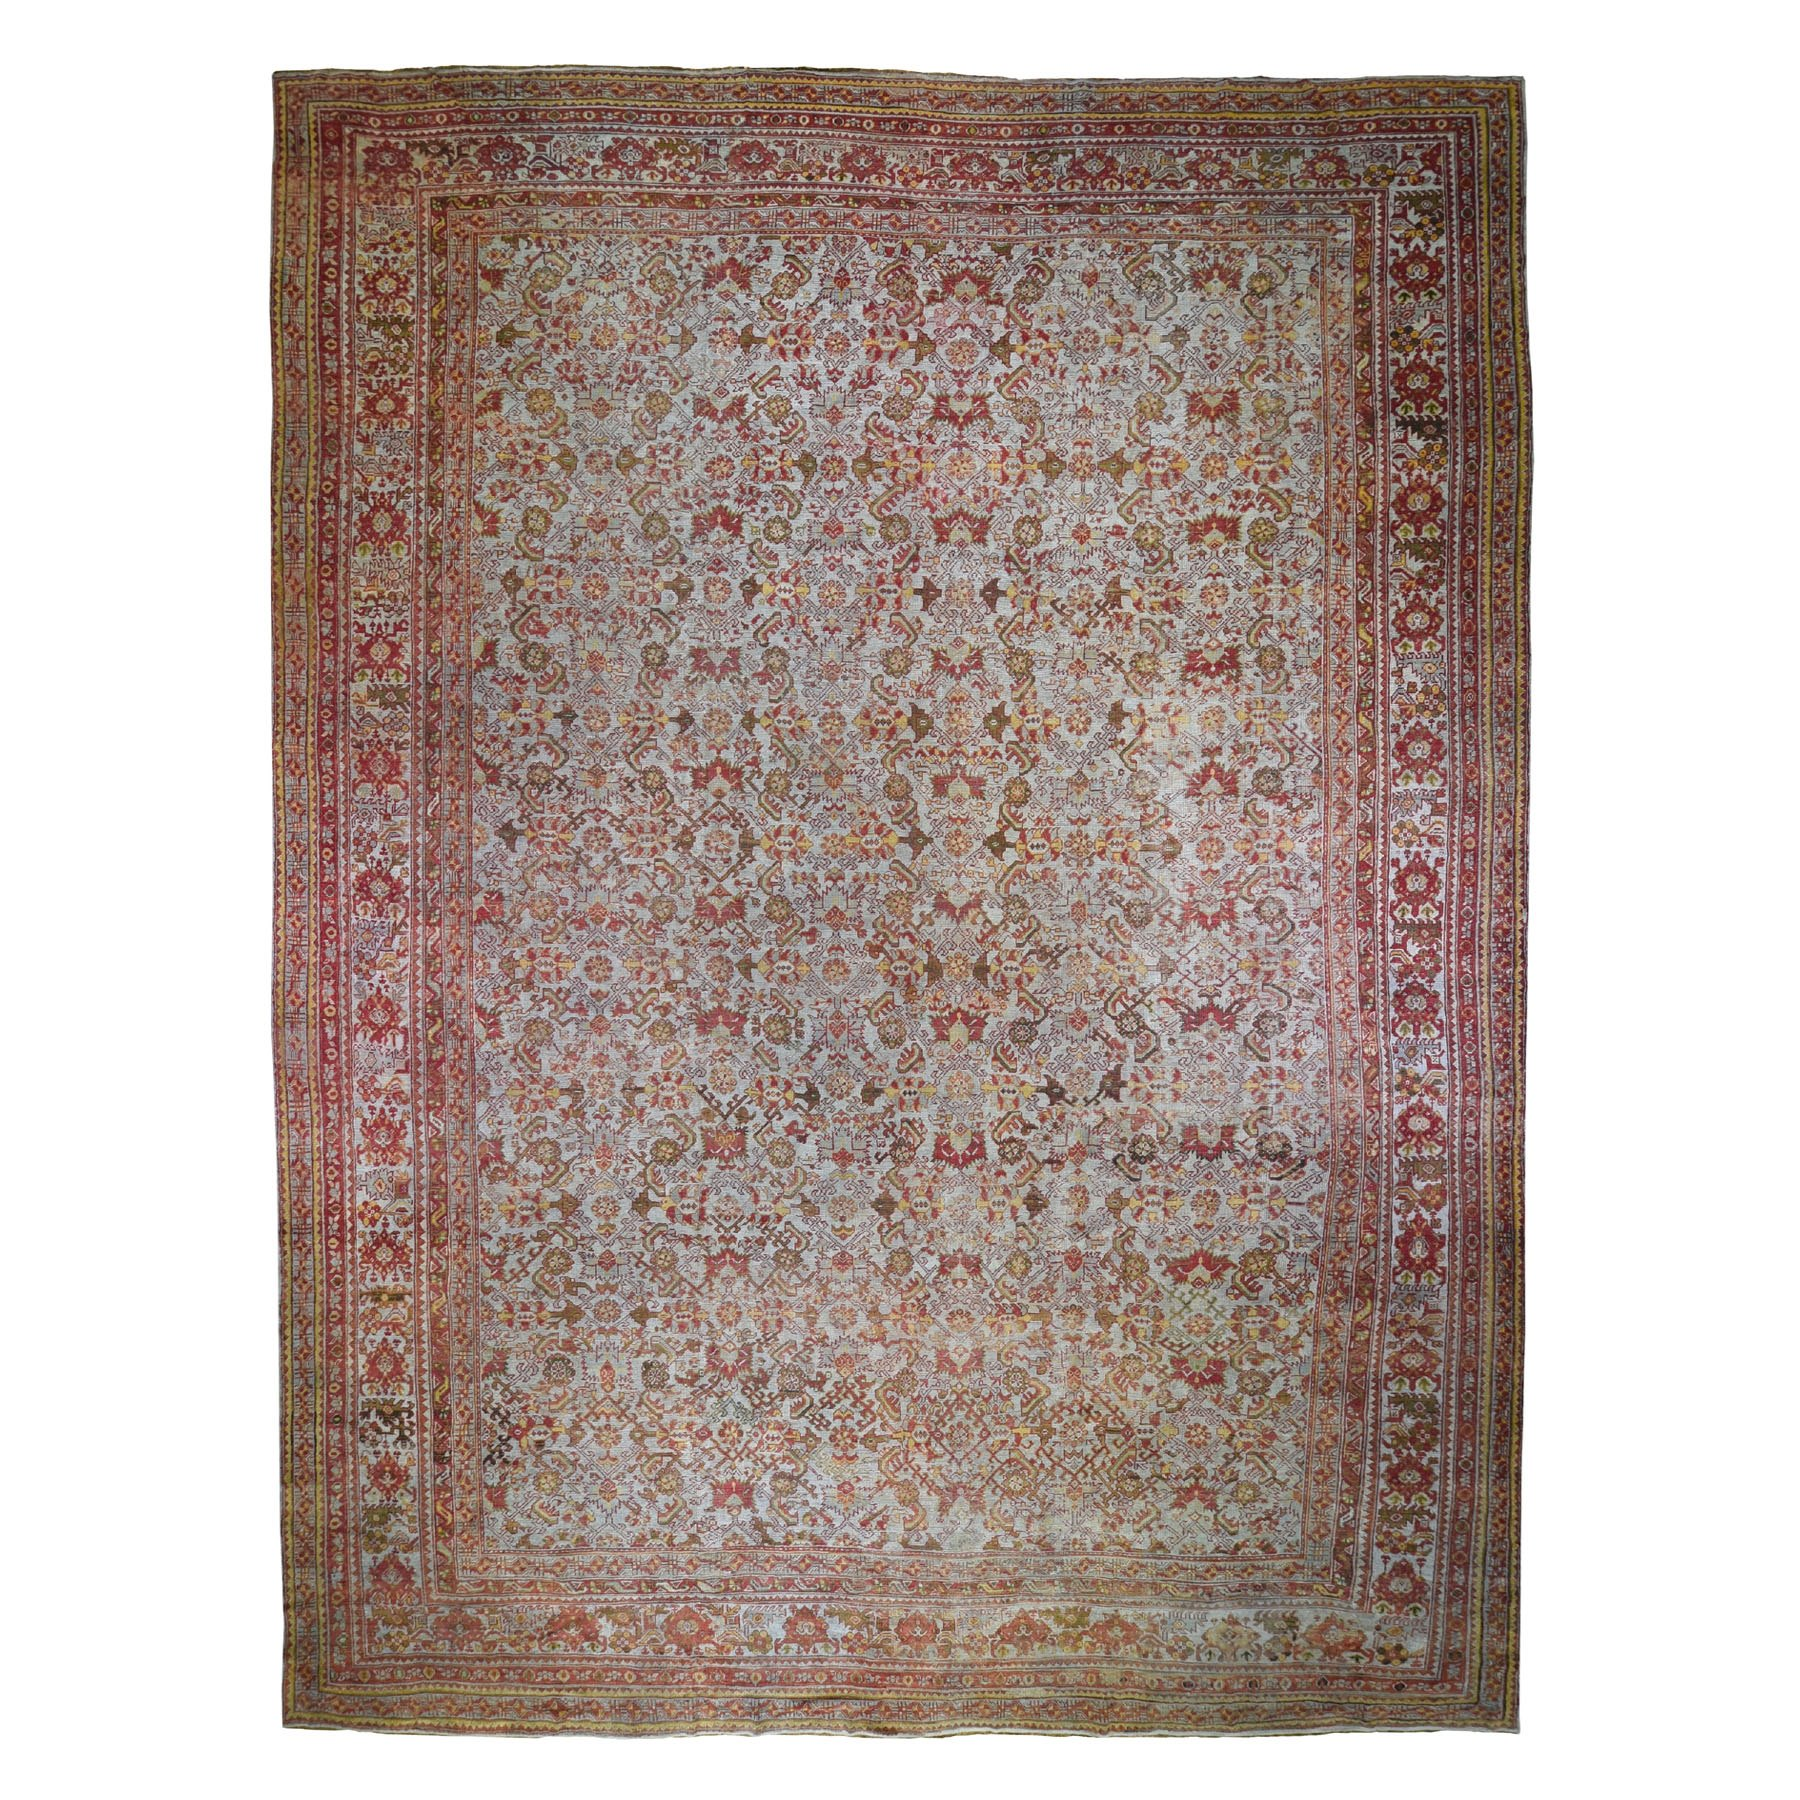 "16'8""x21' Mansion Size Antique Turkish Oushak All Over Design Pure Wool Hand Knotted Oriental Rug"